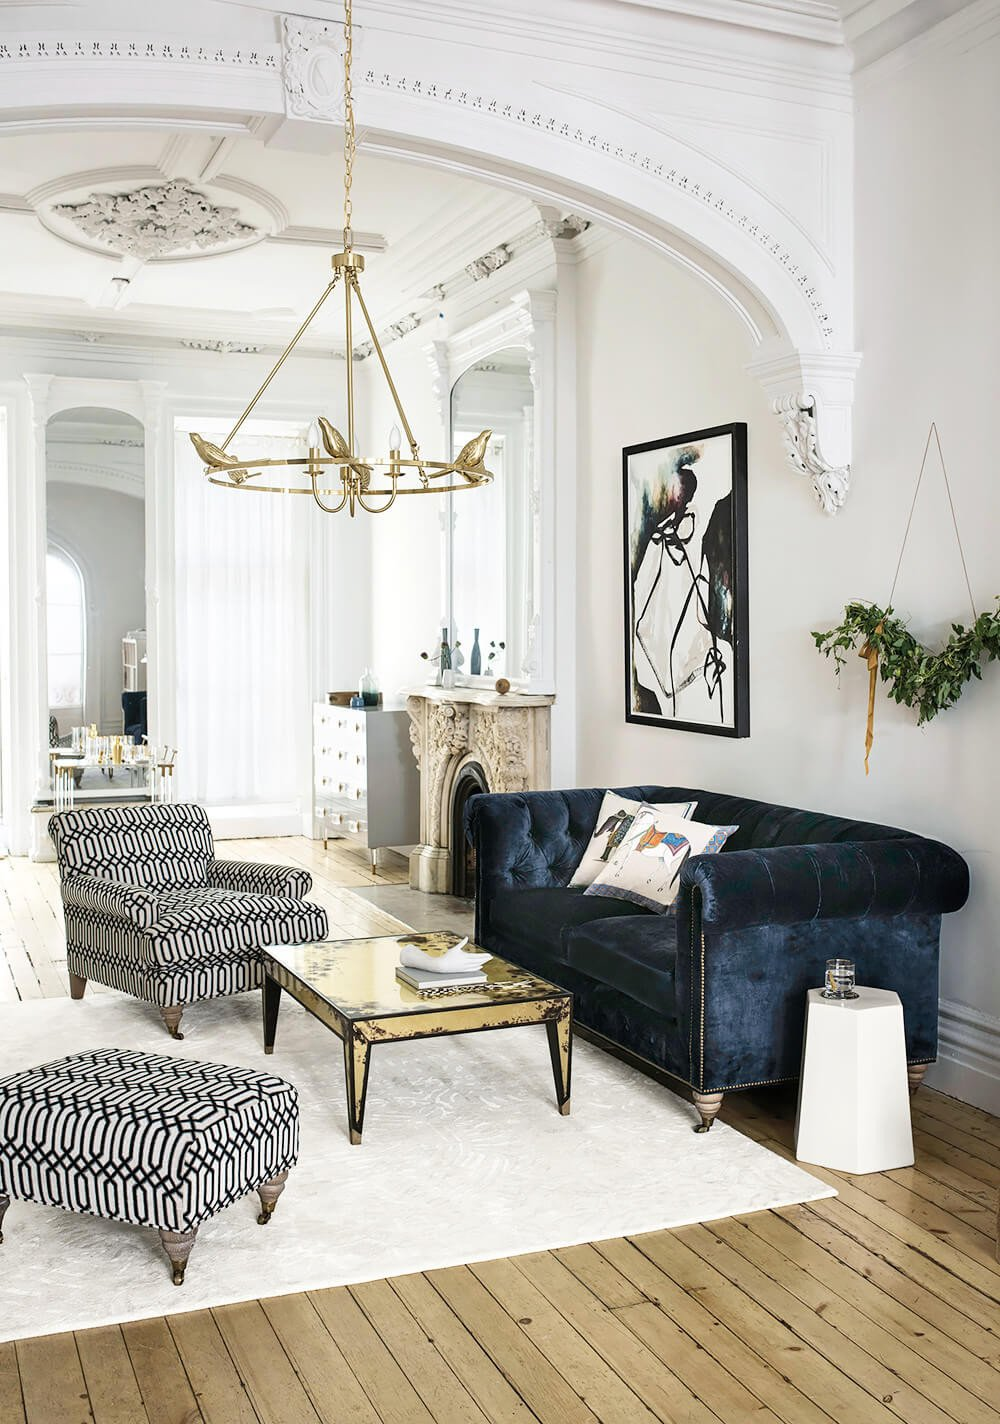 Contemporary Living Room Decorating Ideas New 26 Best Modern Living Room Decorating Ideas and Designs for 2019